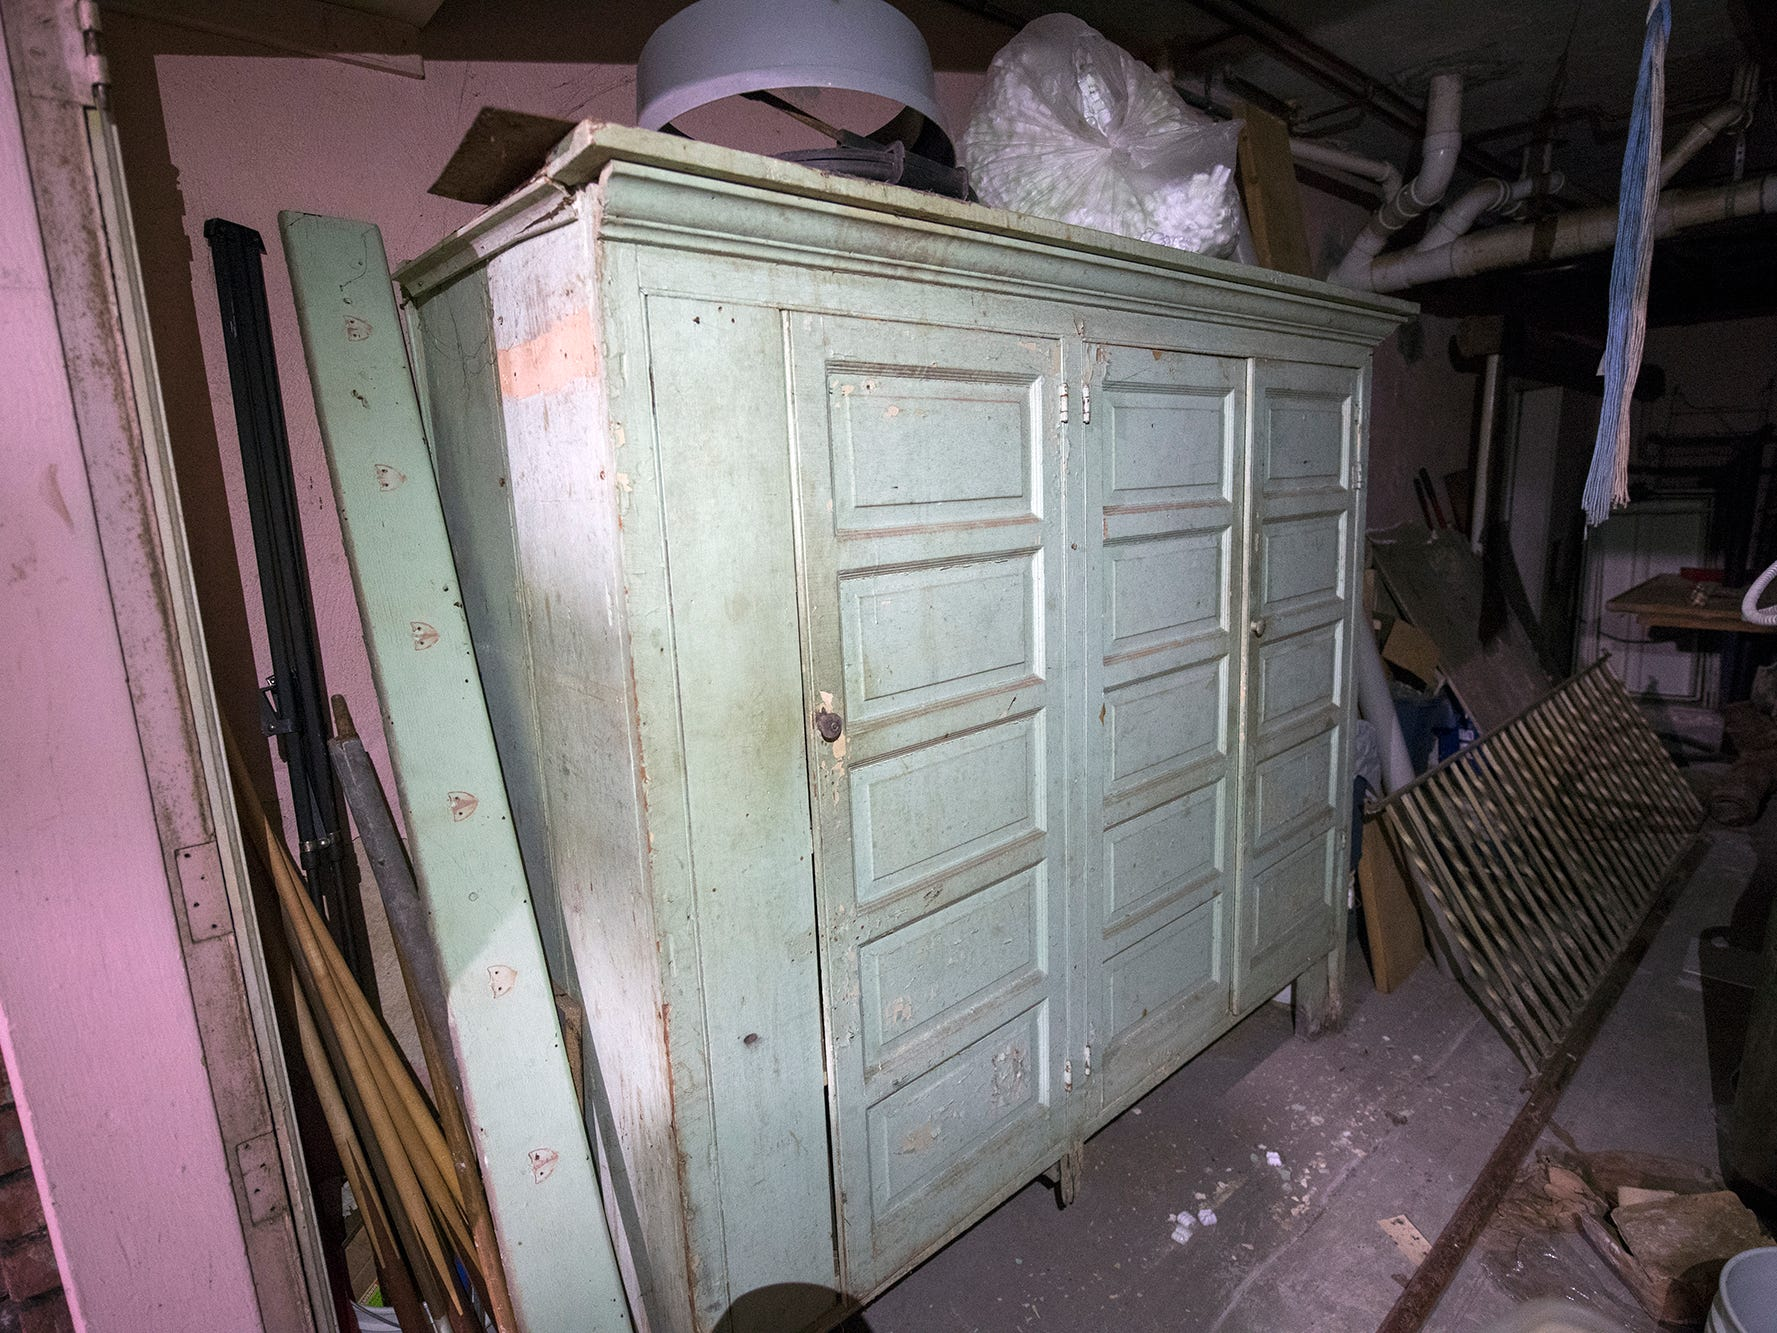 An old paneled cabinet sits in the basement of the former Cobblestones building on Wednesday January 9, 2019.